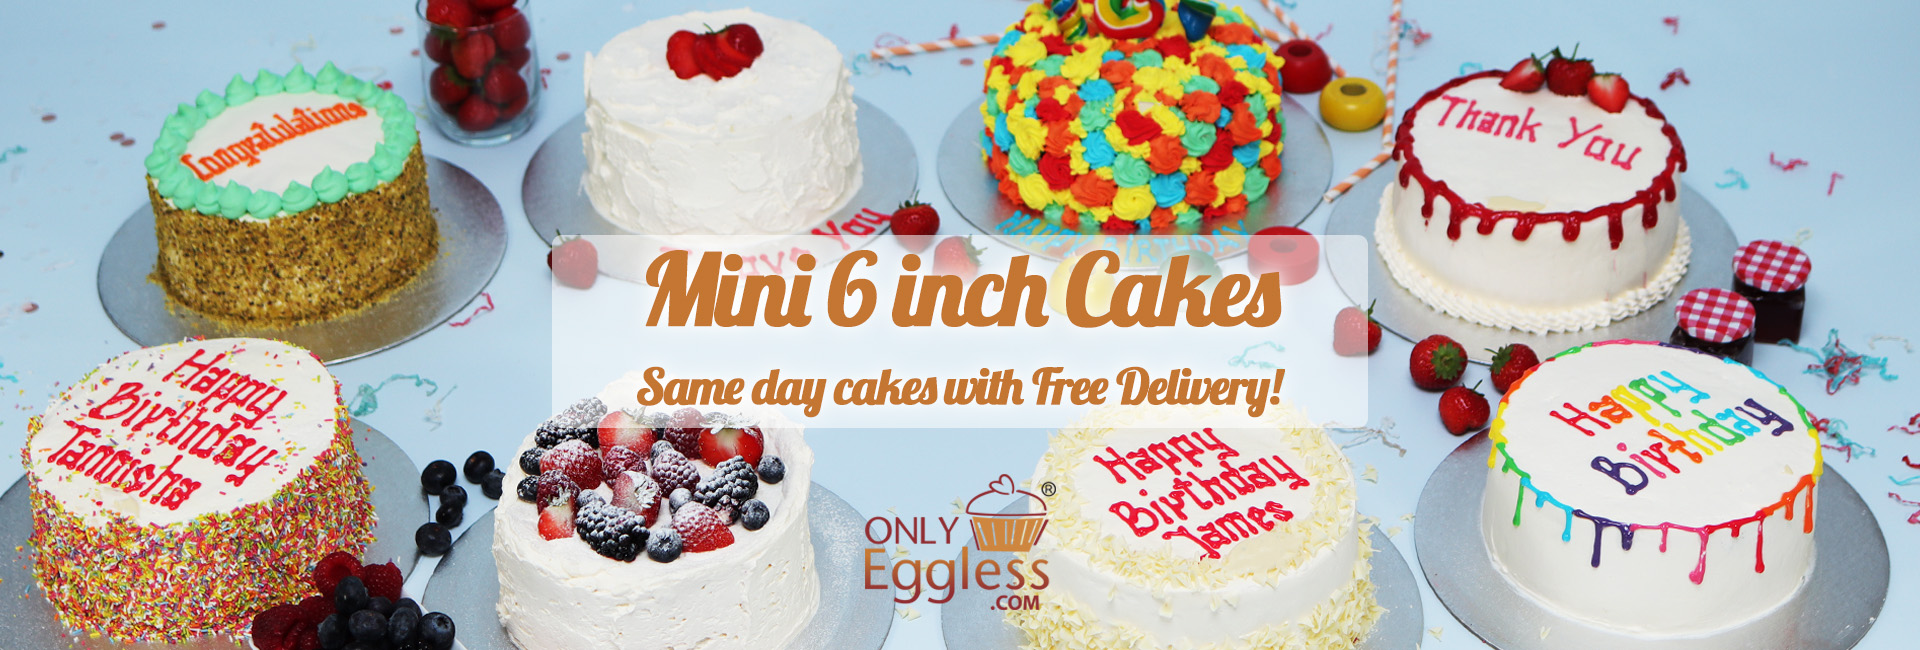 6 Inch Cakes